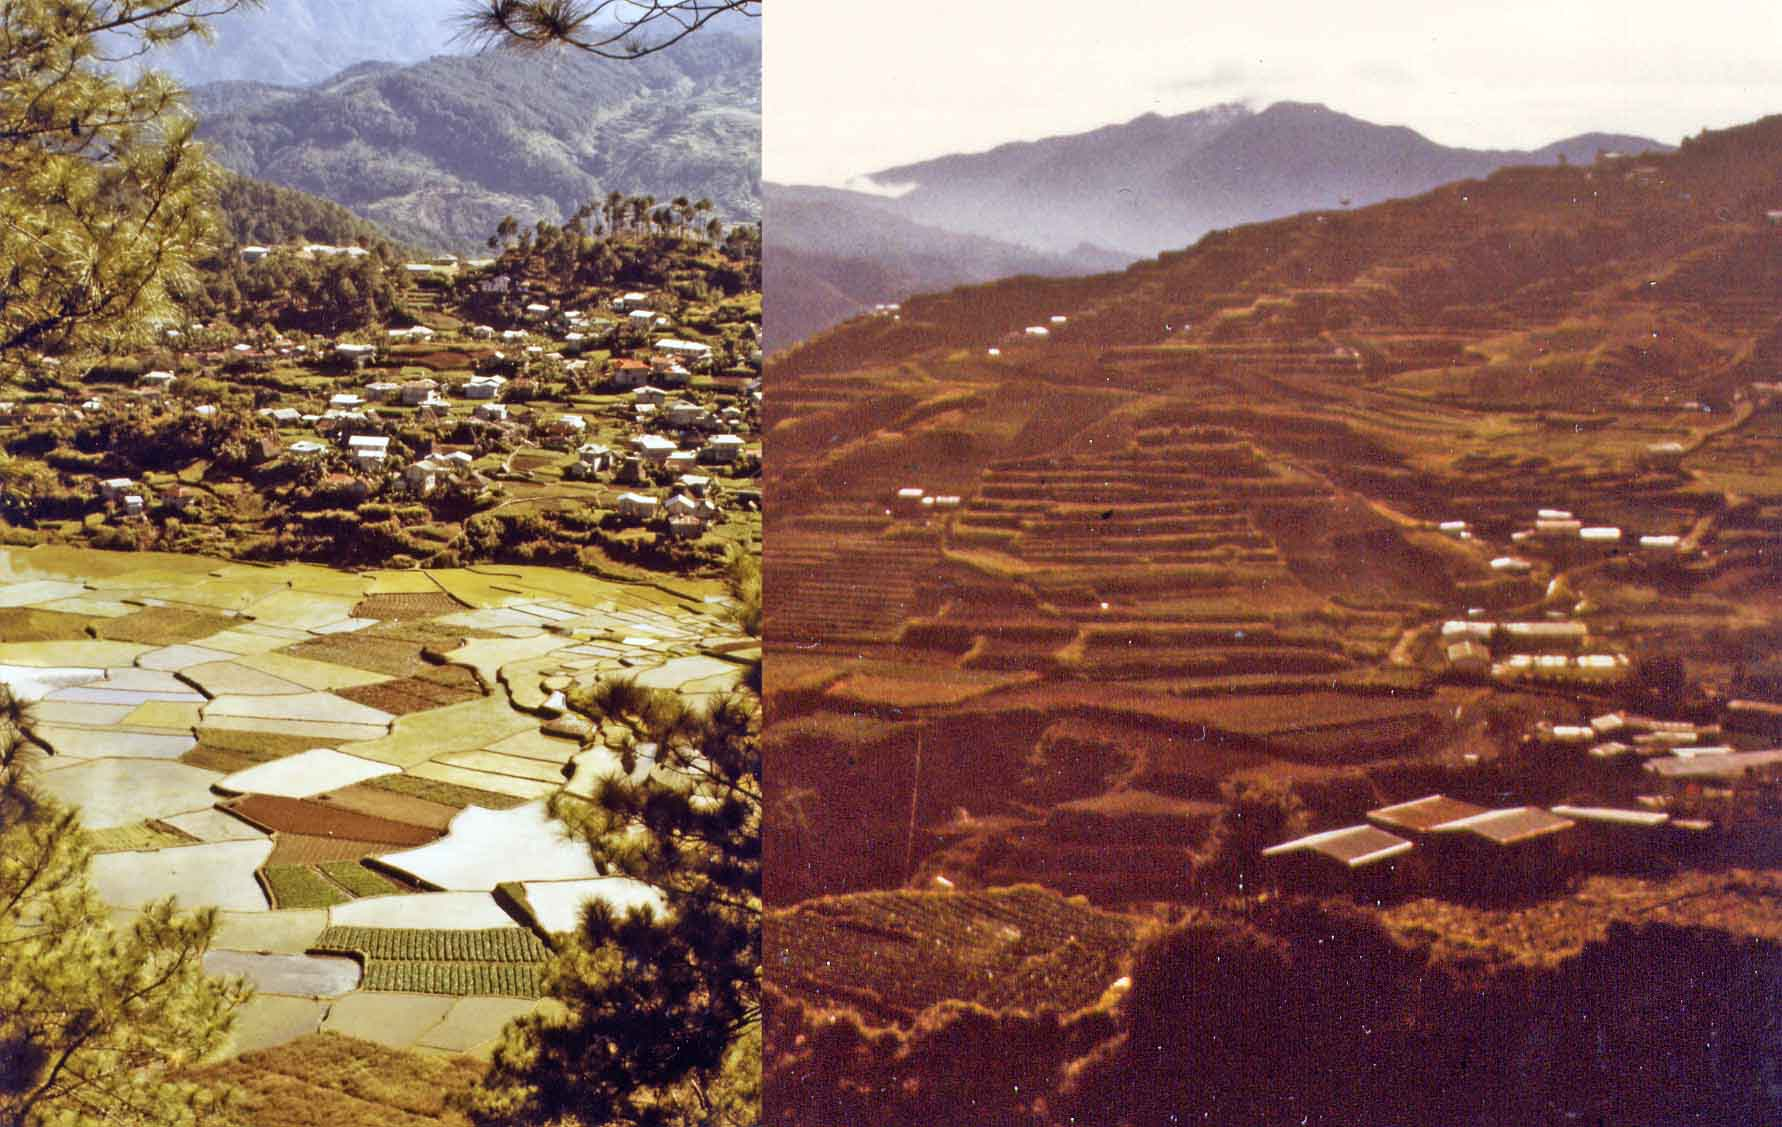 Rice terraces in Sagada